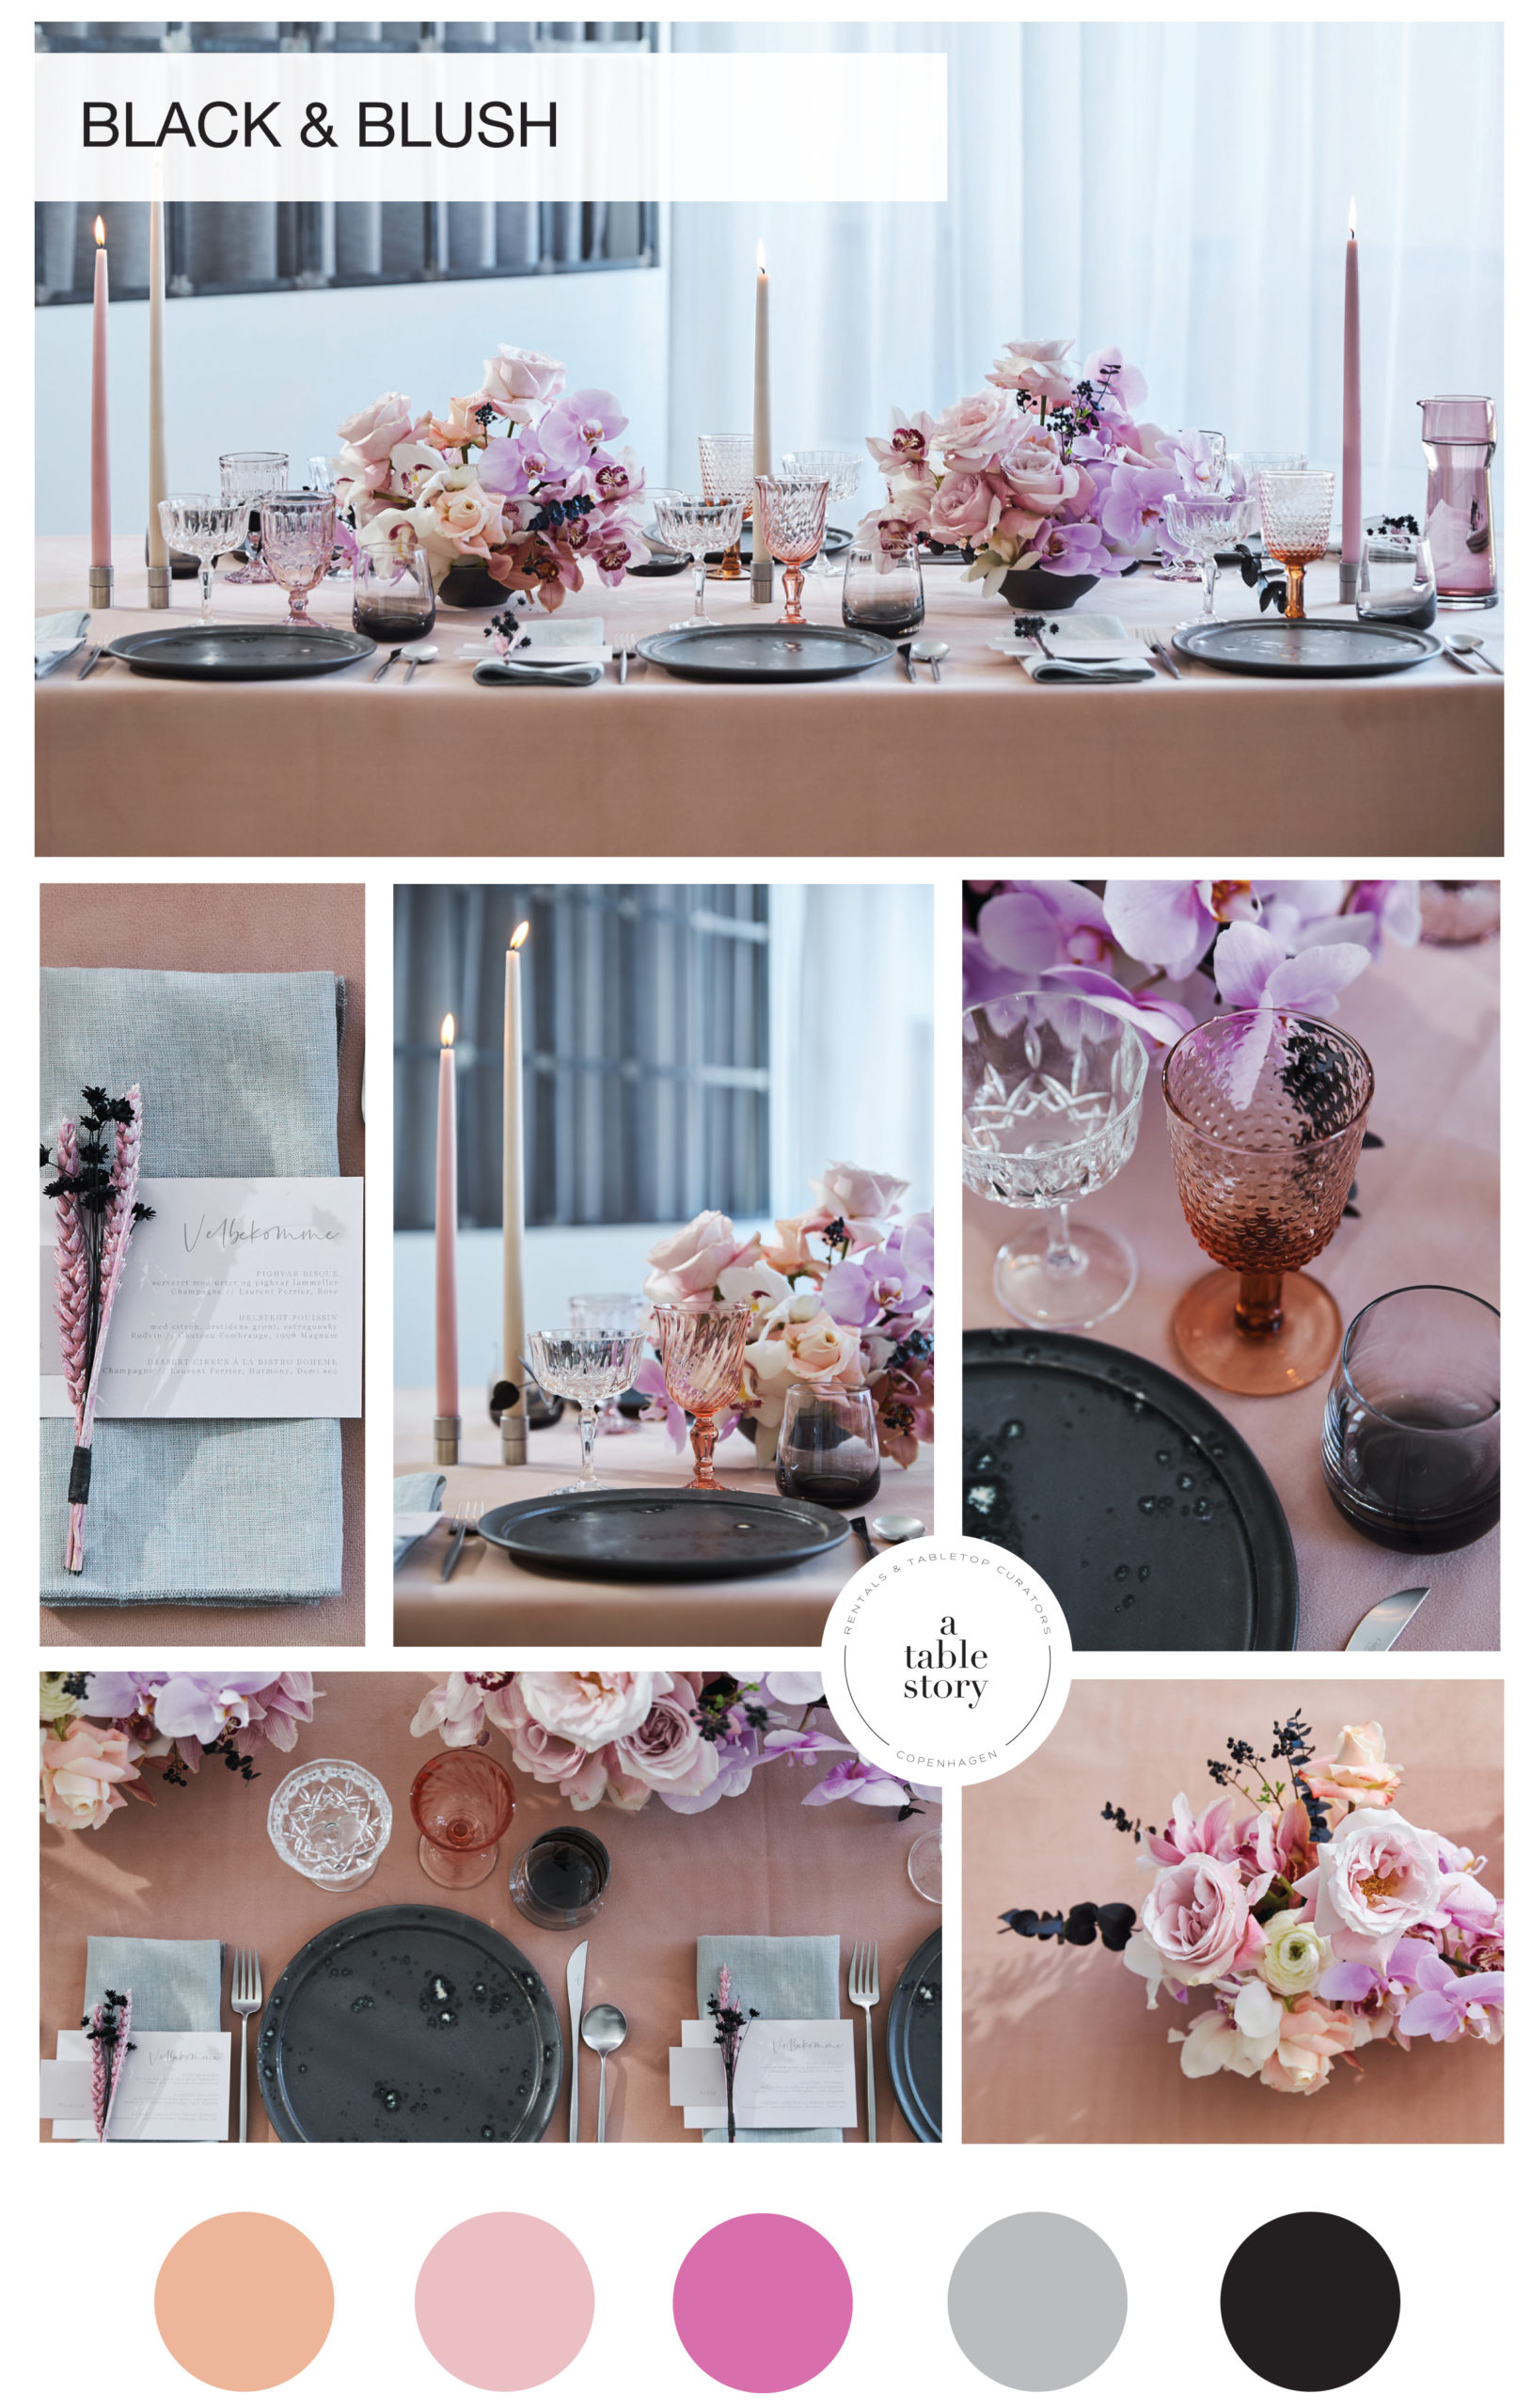 BLACK AND BLUSH_A table story